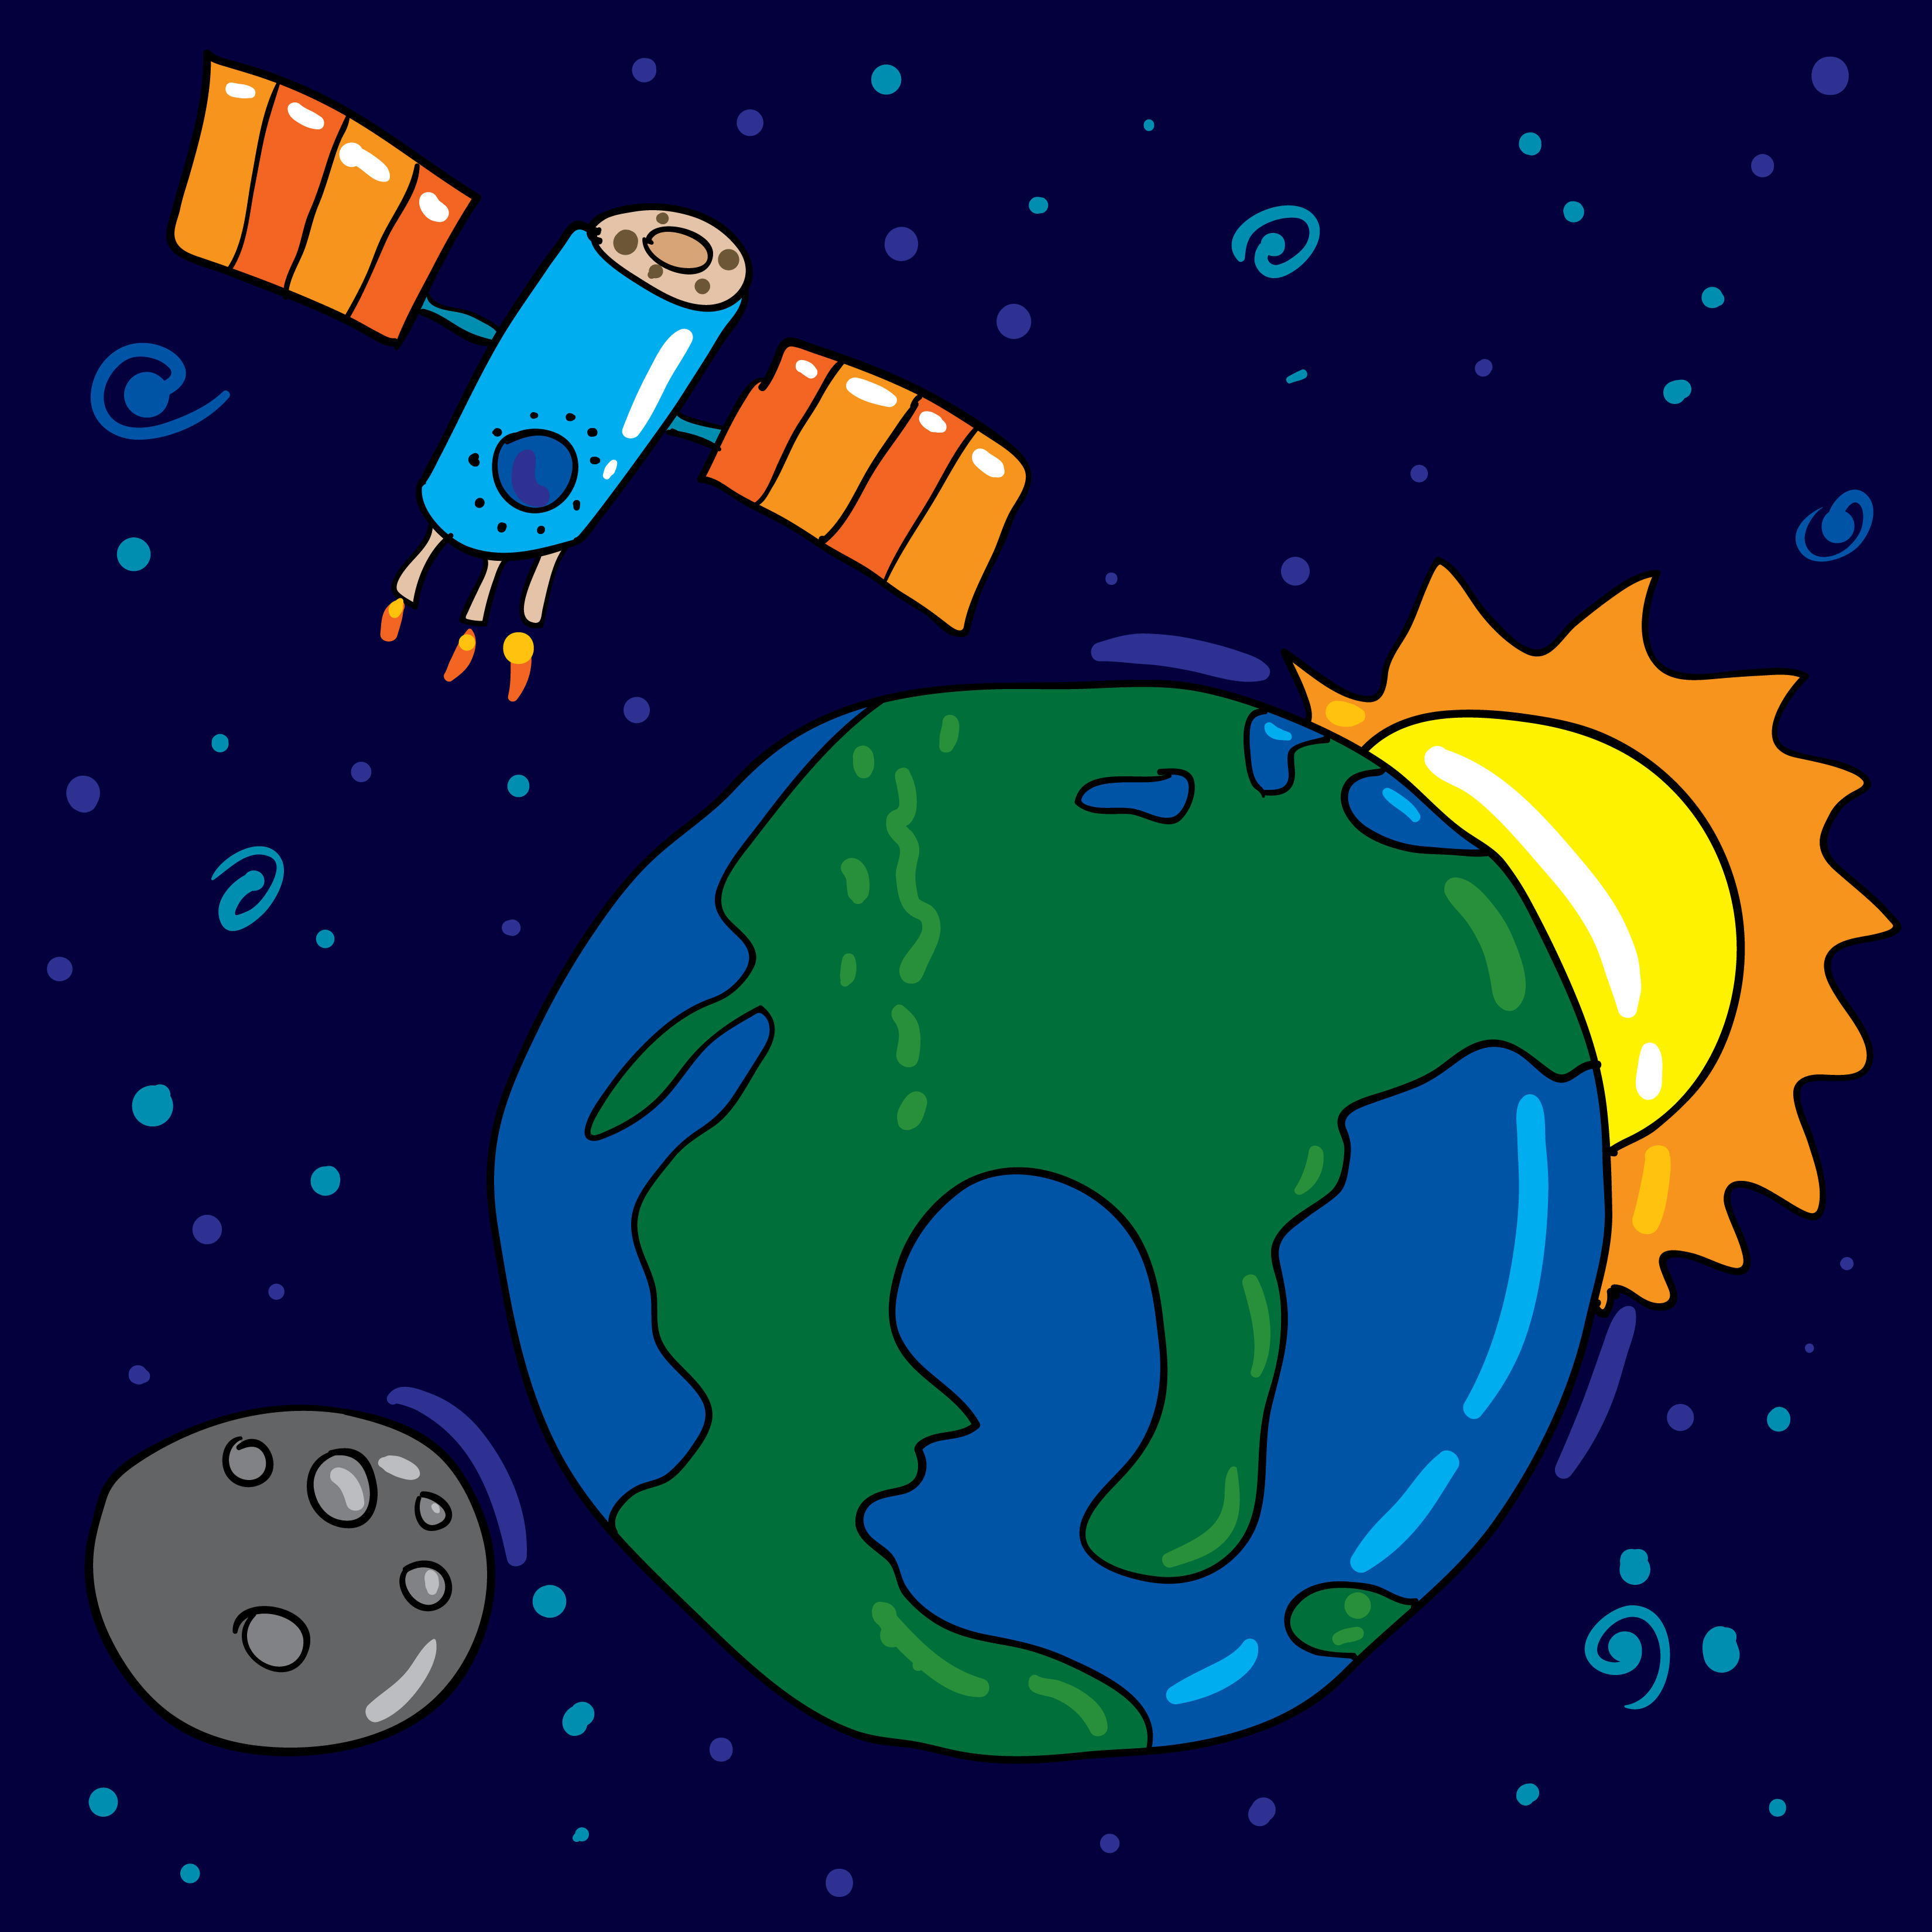 Earth and space clipart 8 » Clipart Station.